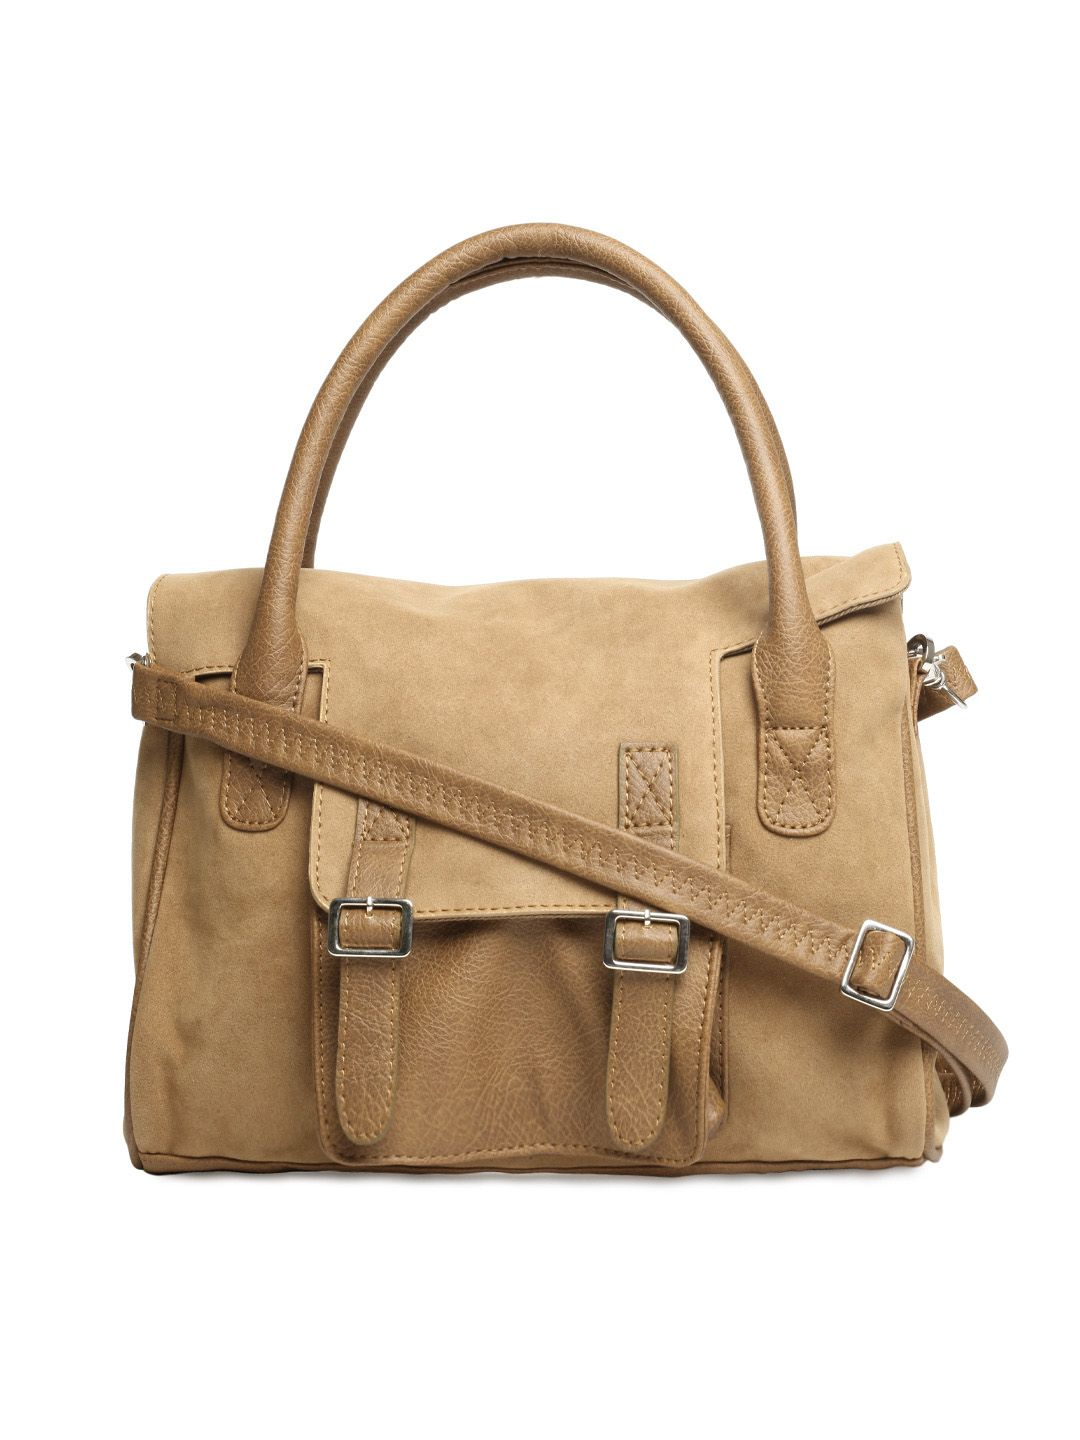 Baggit Women Brown Handbag 8903414138982 Is Sold By Myntra In India Check Price And Exclusive Offers At Priceiq